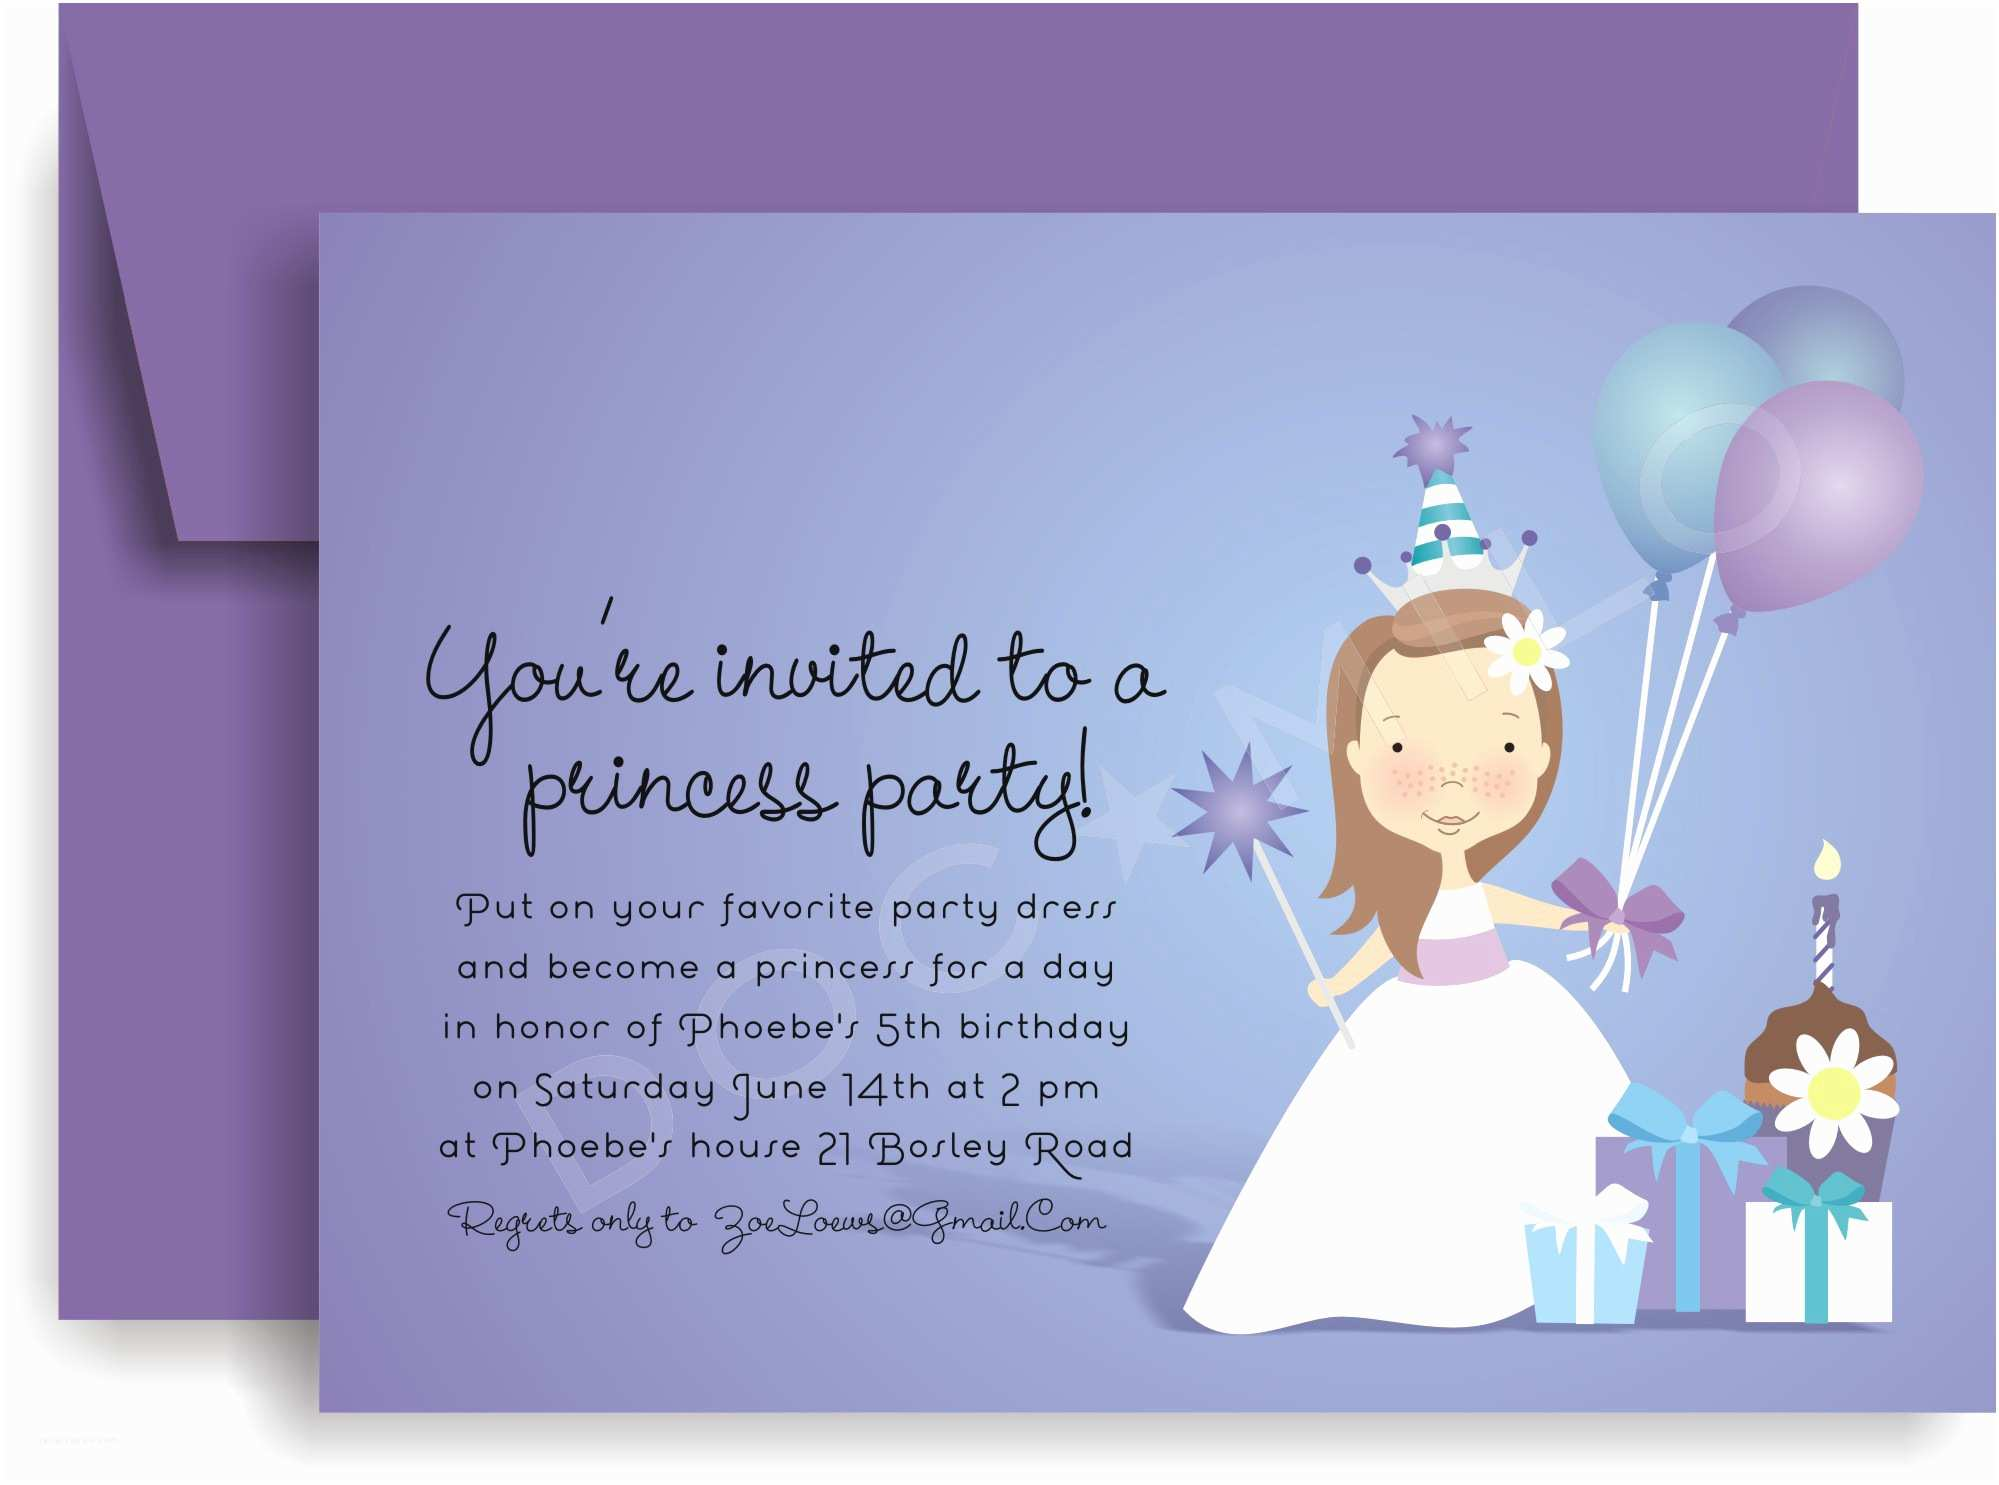 Birthday Party Invitation Template Birthday Party Invitation Templates